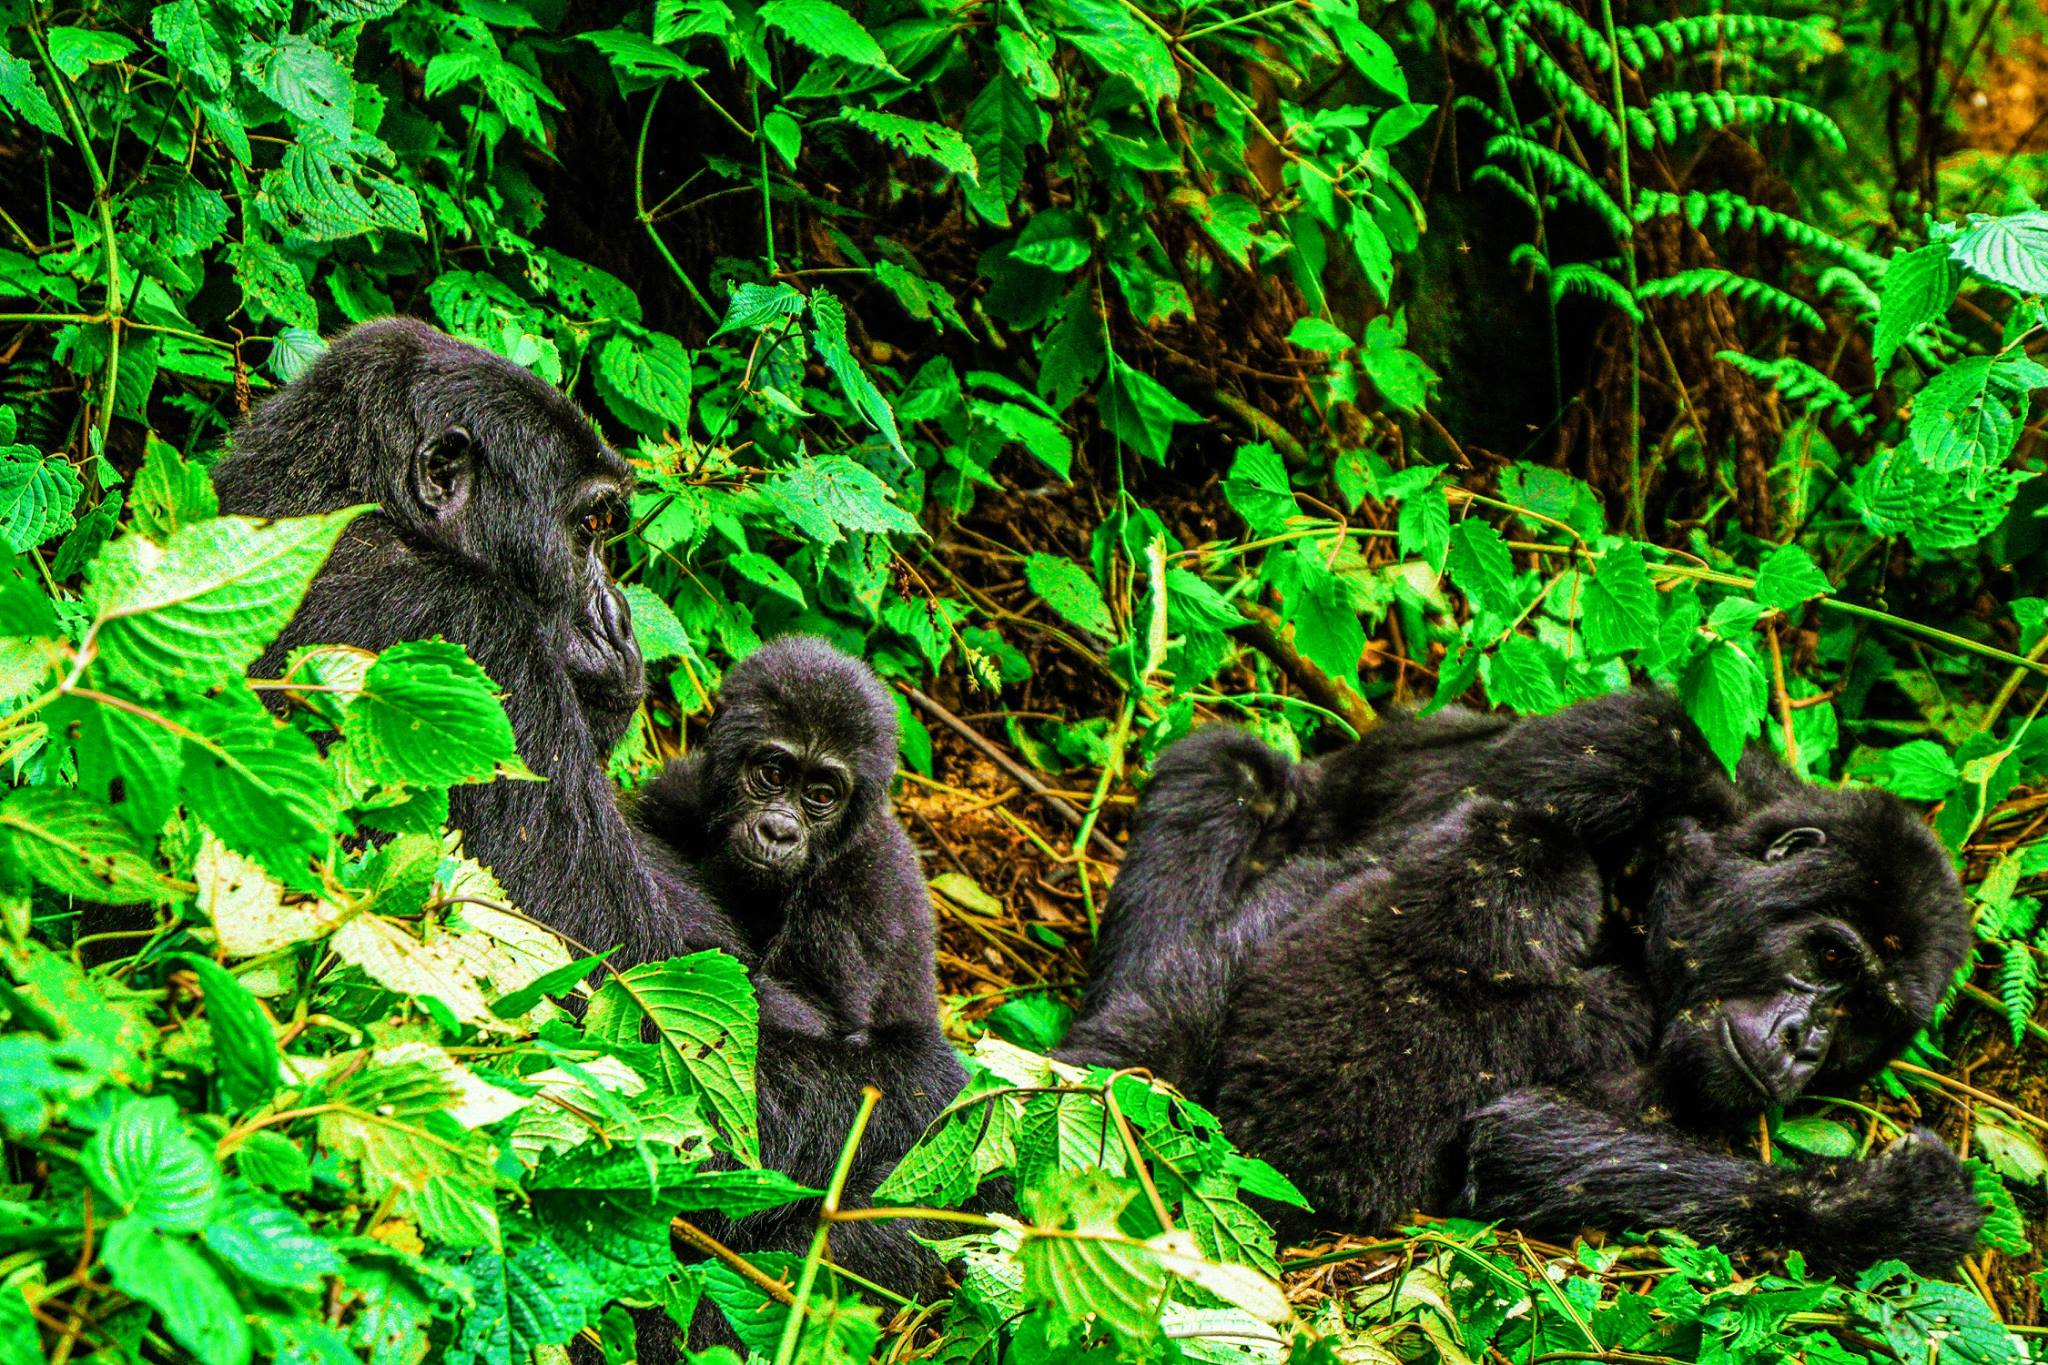 Buhoma Lodge Passing by a family of gorillas relaxing in their natural habitat